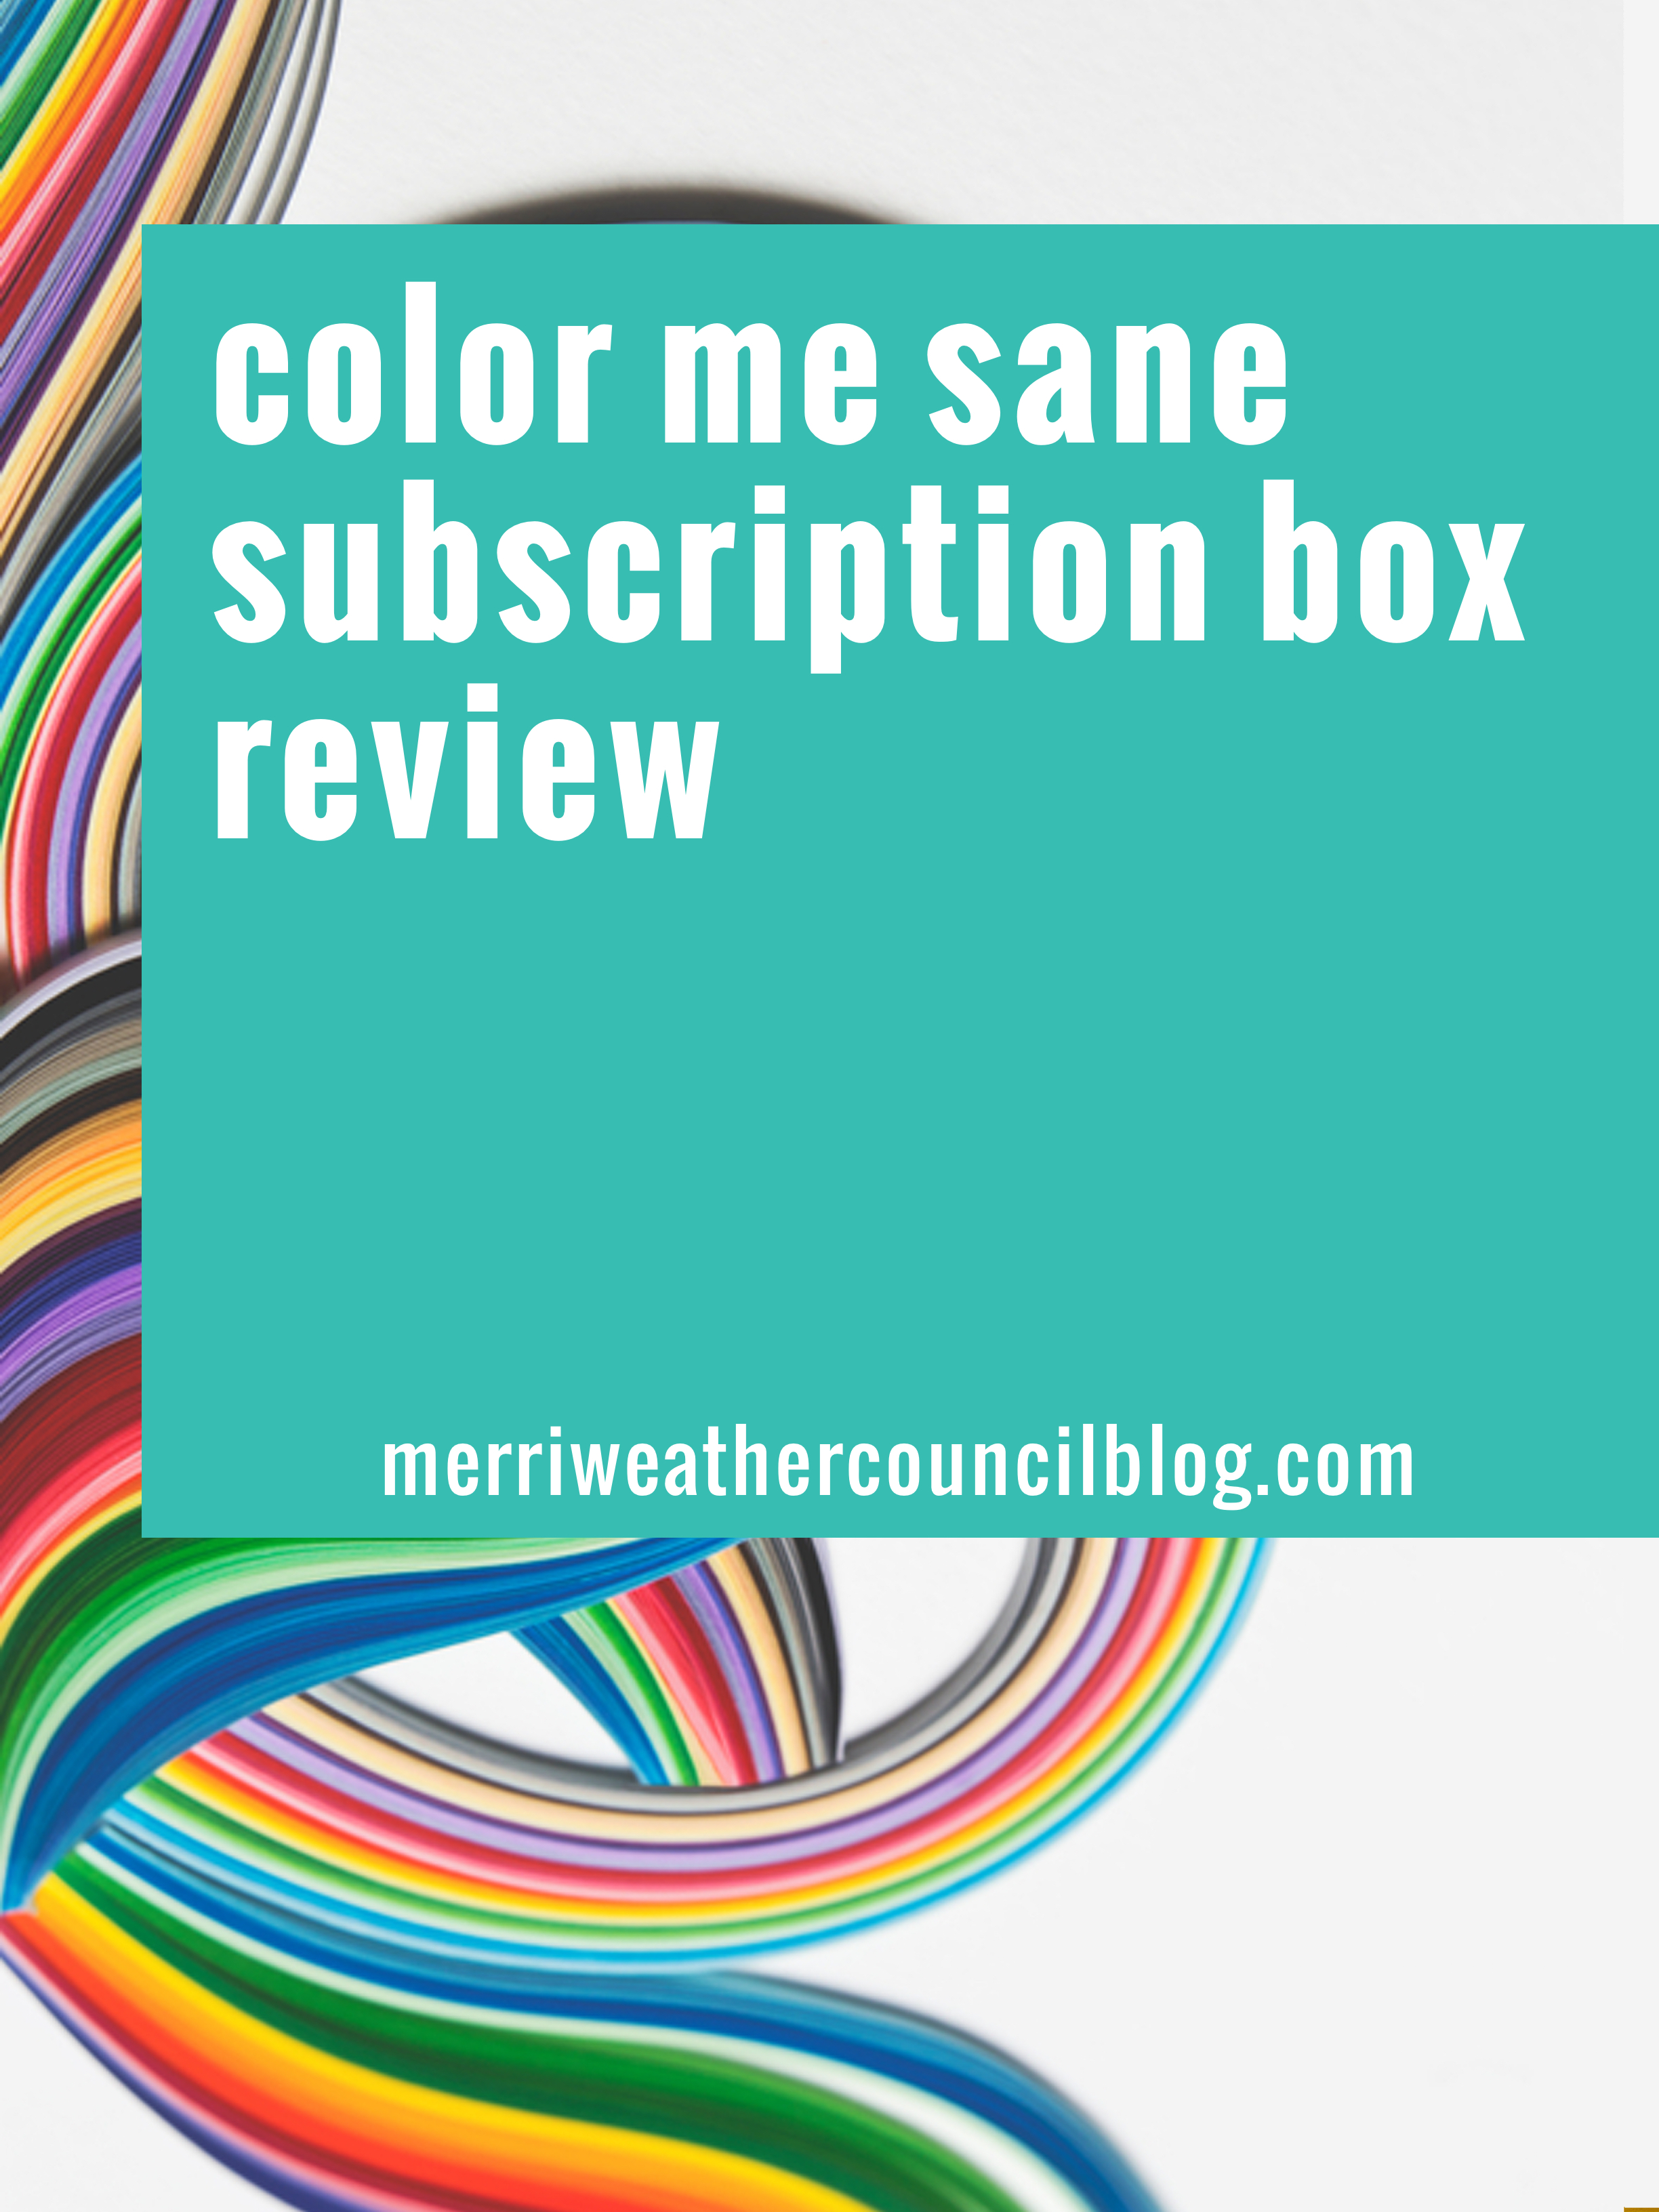 color me sane subscription box | the merriweather council blog